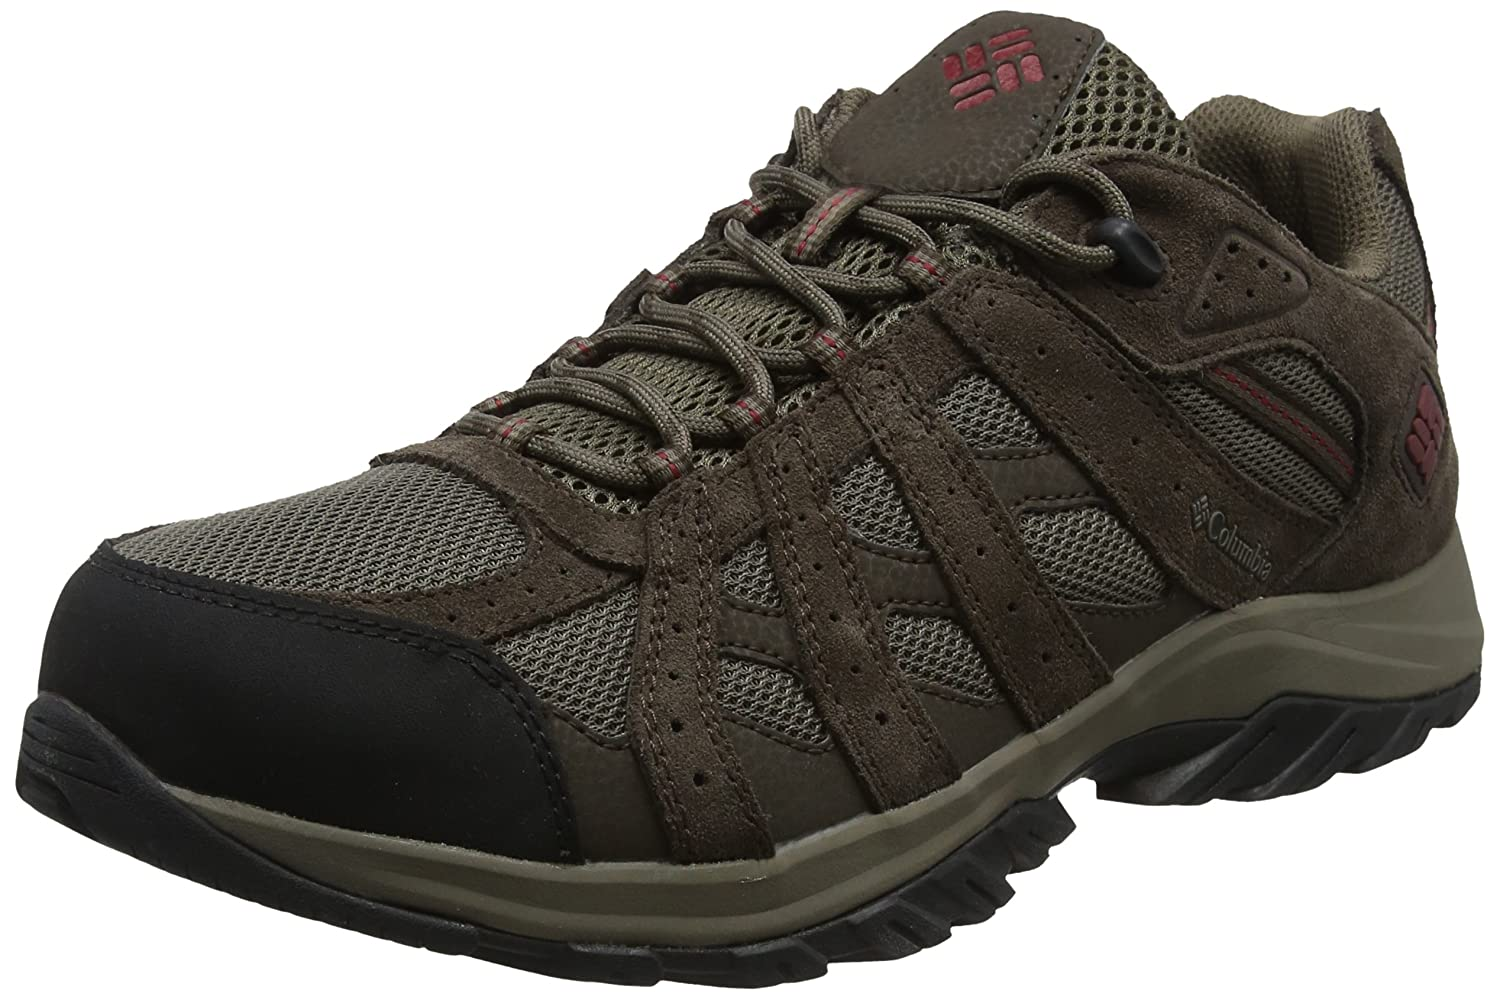 TALLA 42 EU. Columbia Canyon Point Waterproof, Zapatillas de Senderismo, Impermeable para Hombre